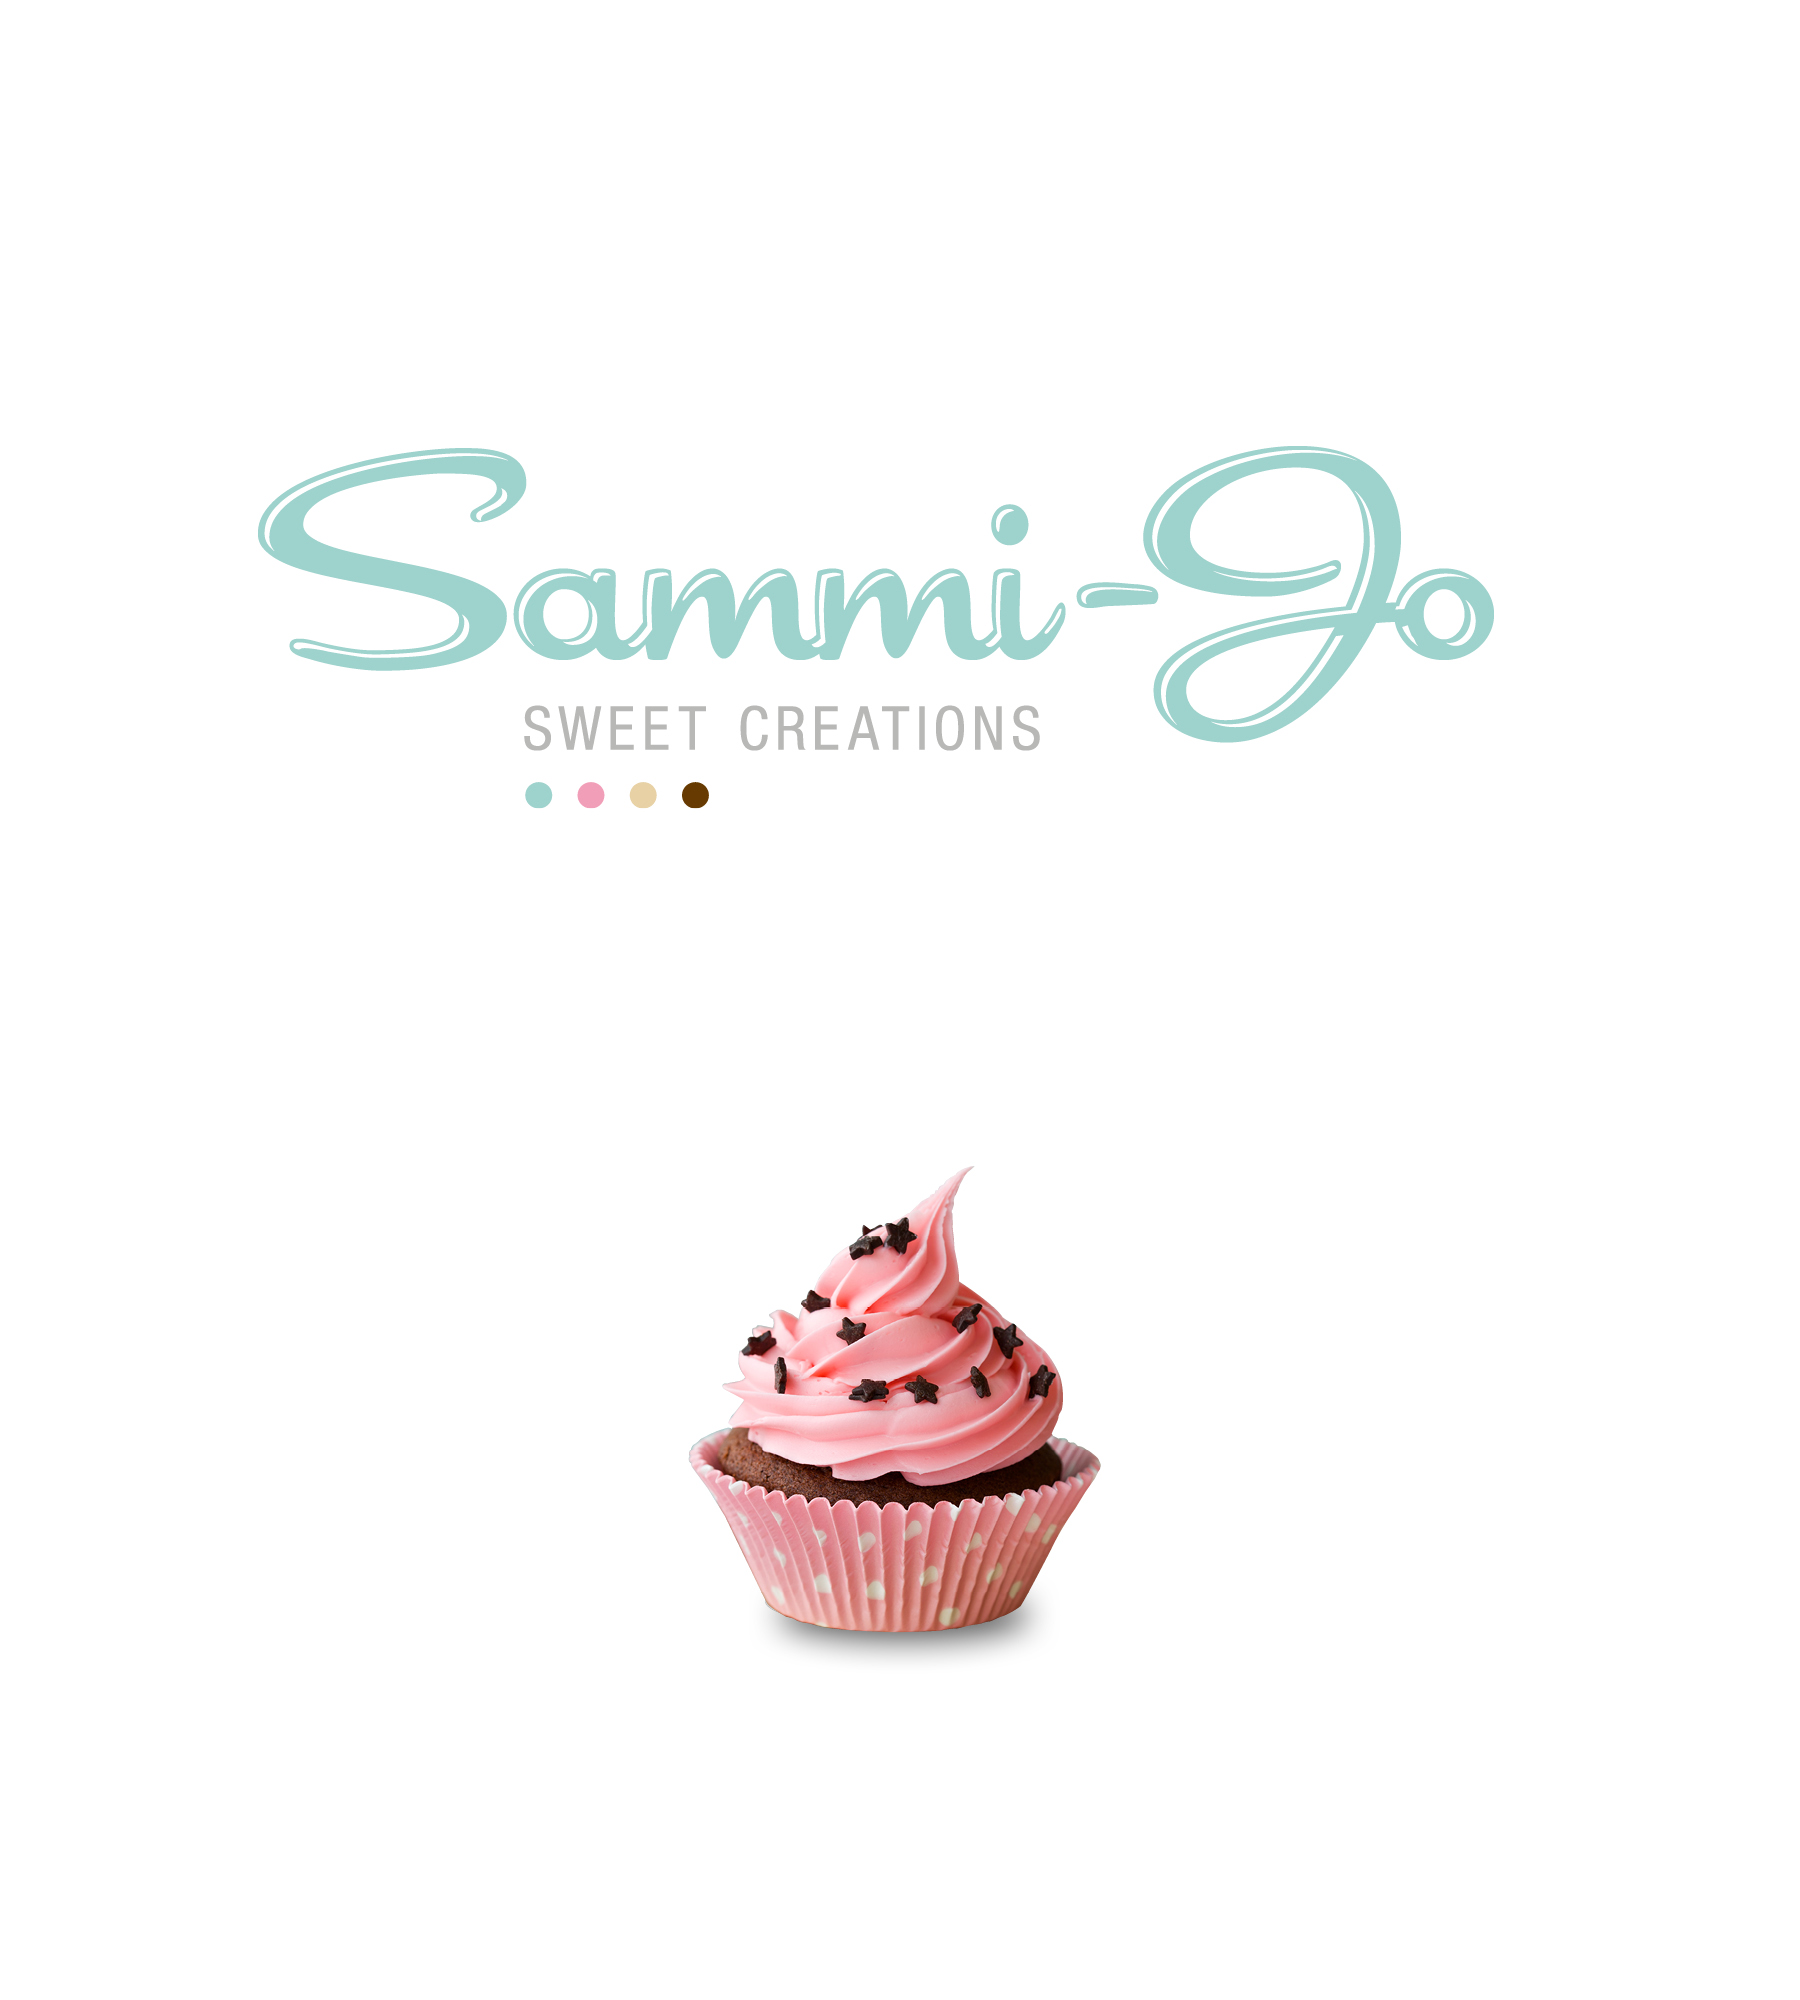 Sammi-Jo Sweet Creations - Creating a sweet sensation. Sammi-Jo is a boutique cake and dessert studio located in South Australia's Riverland. Chef and founder, Joanna came to us to cook up a fun brand as beautiful as her custom creations. Our integrated brand strategy included corporate collateral, signage, packaging design, online marketing and trade show materials. For Joanna, it's been a sweet success story!